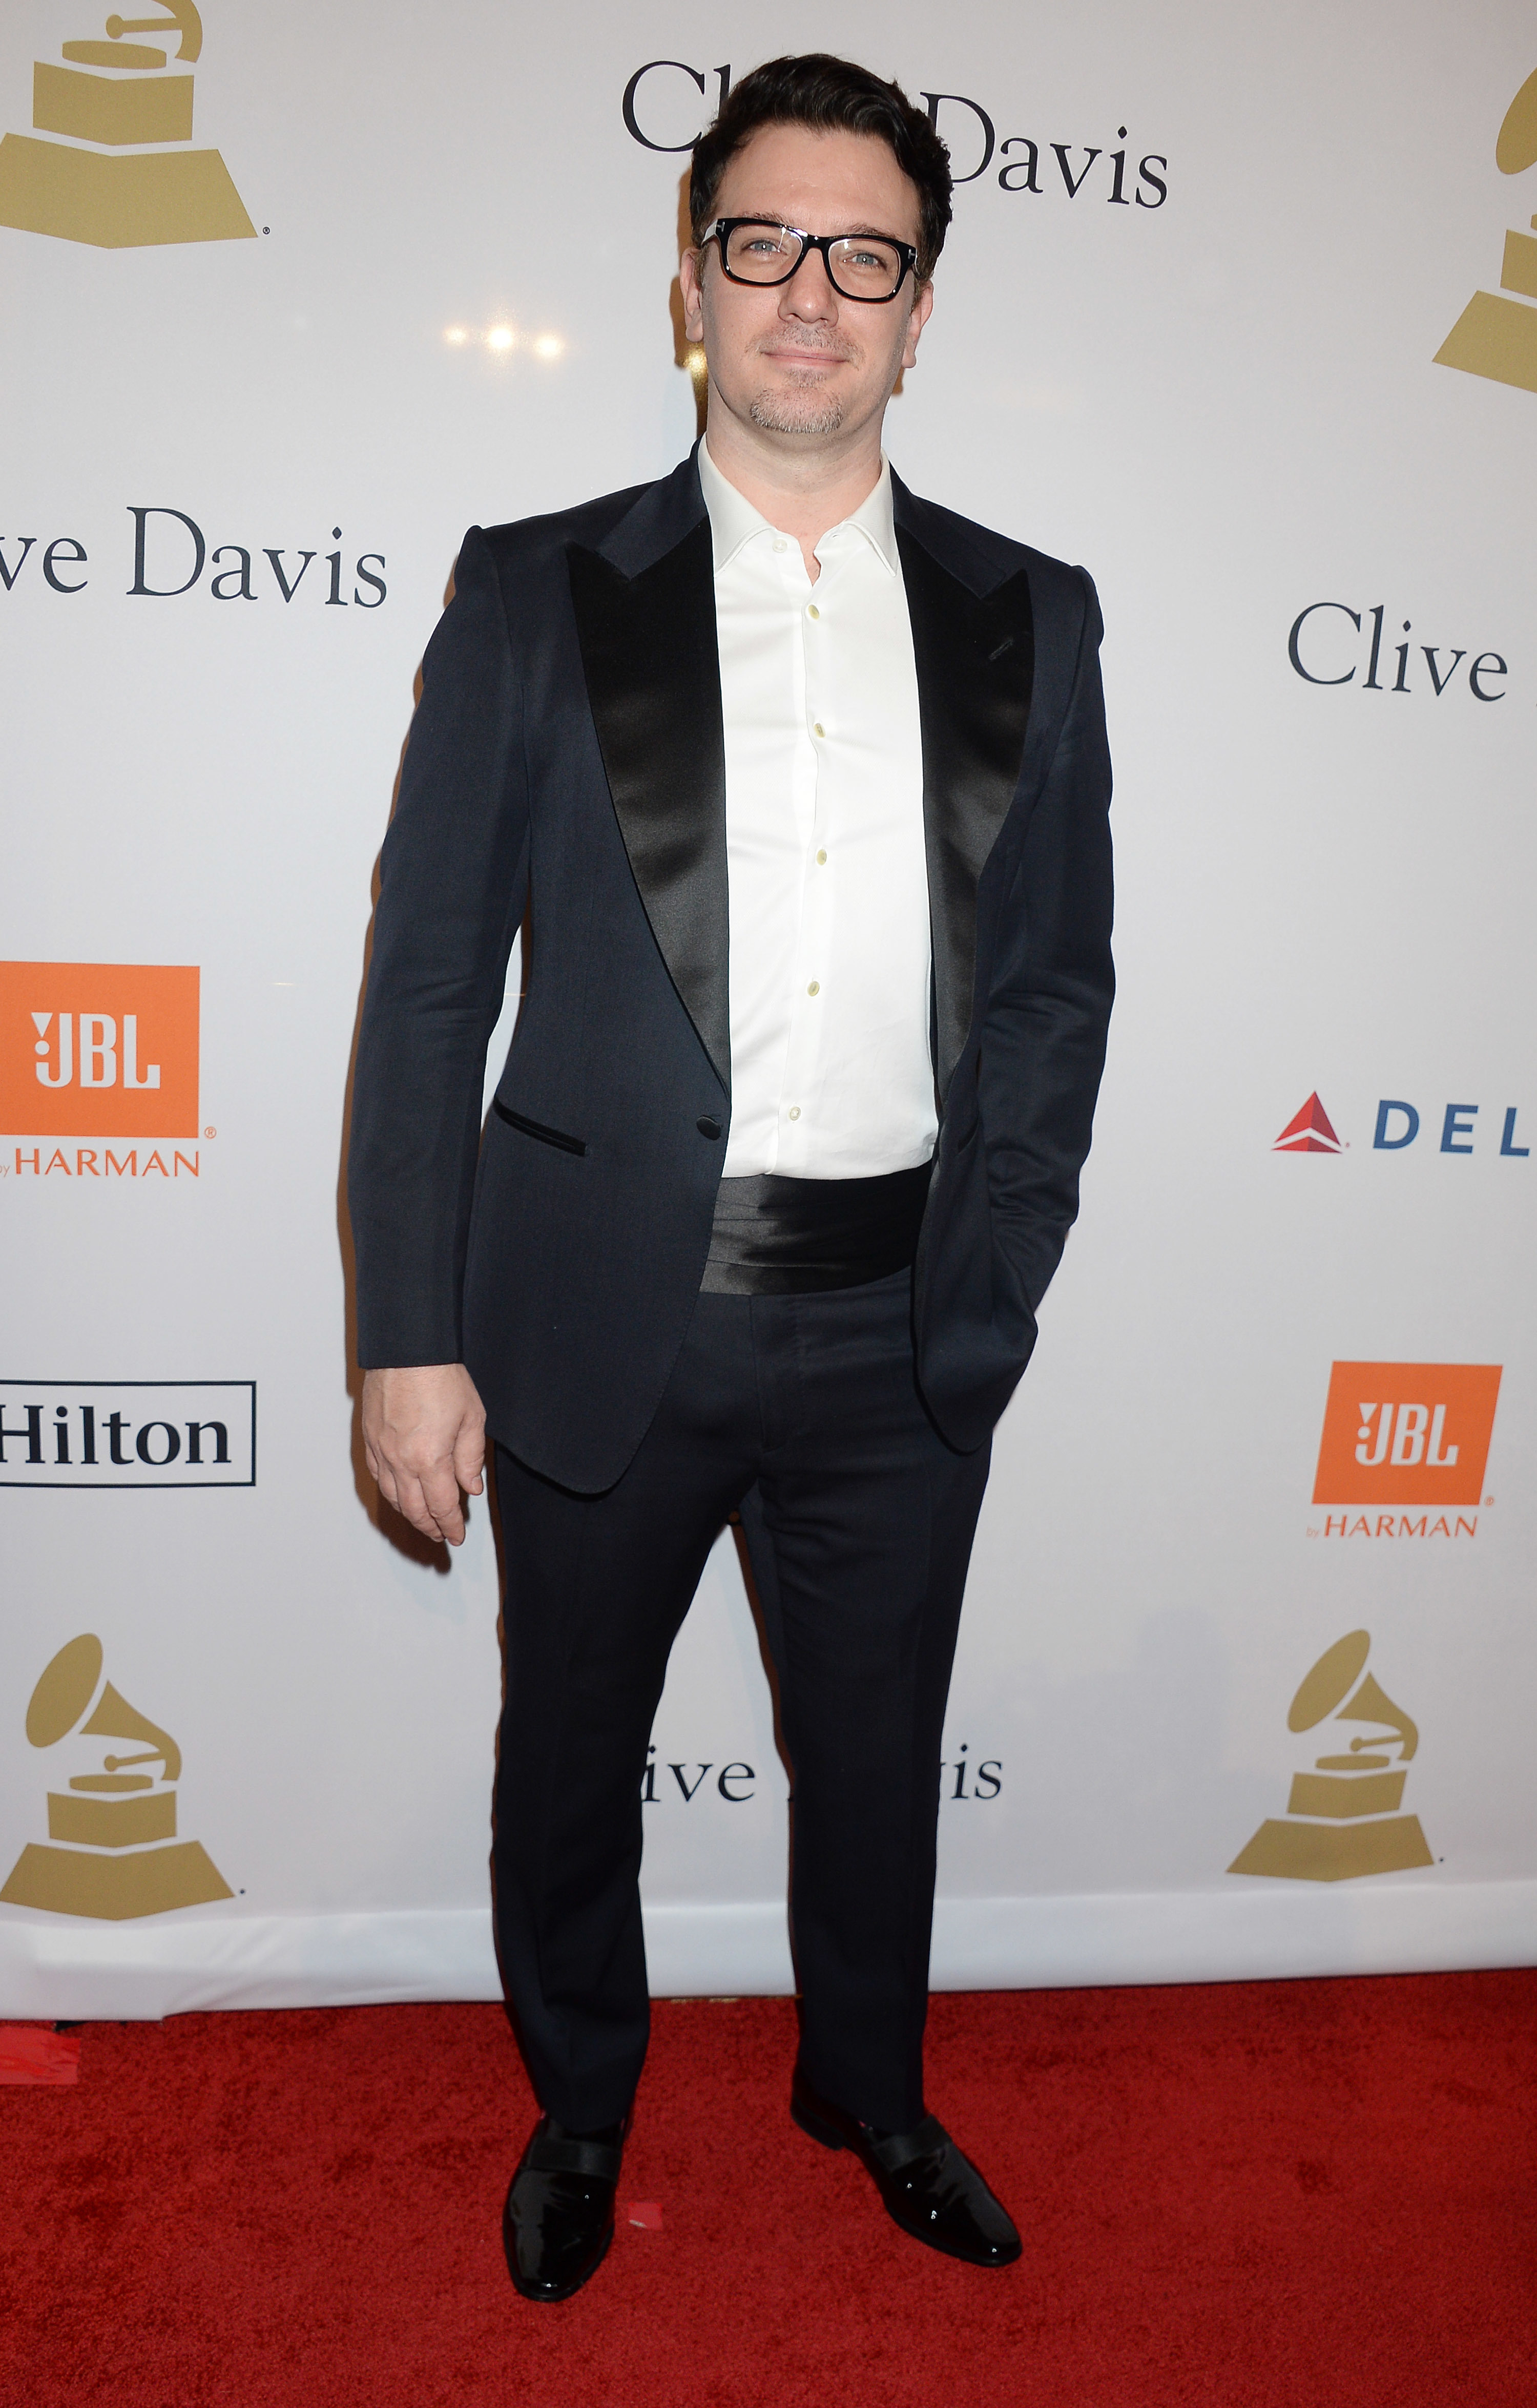 JC Chasez arrives at the Clive Davis Pre Grammy Party in Los Angeles on Feb. 11, 2017.